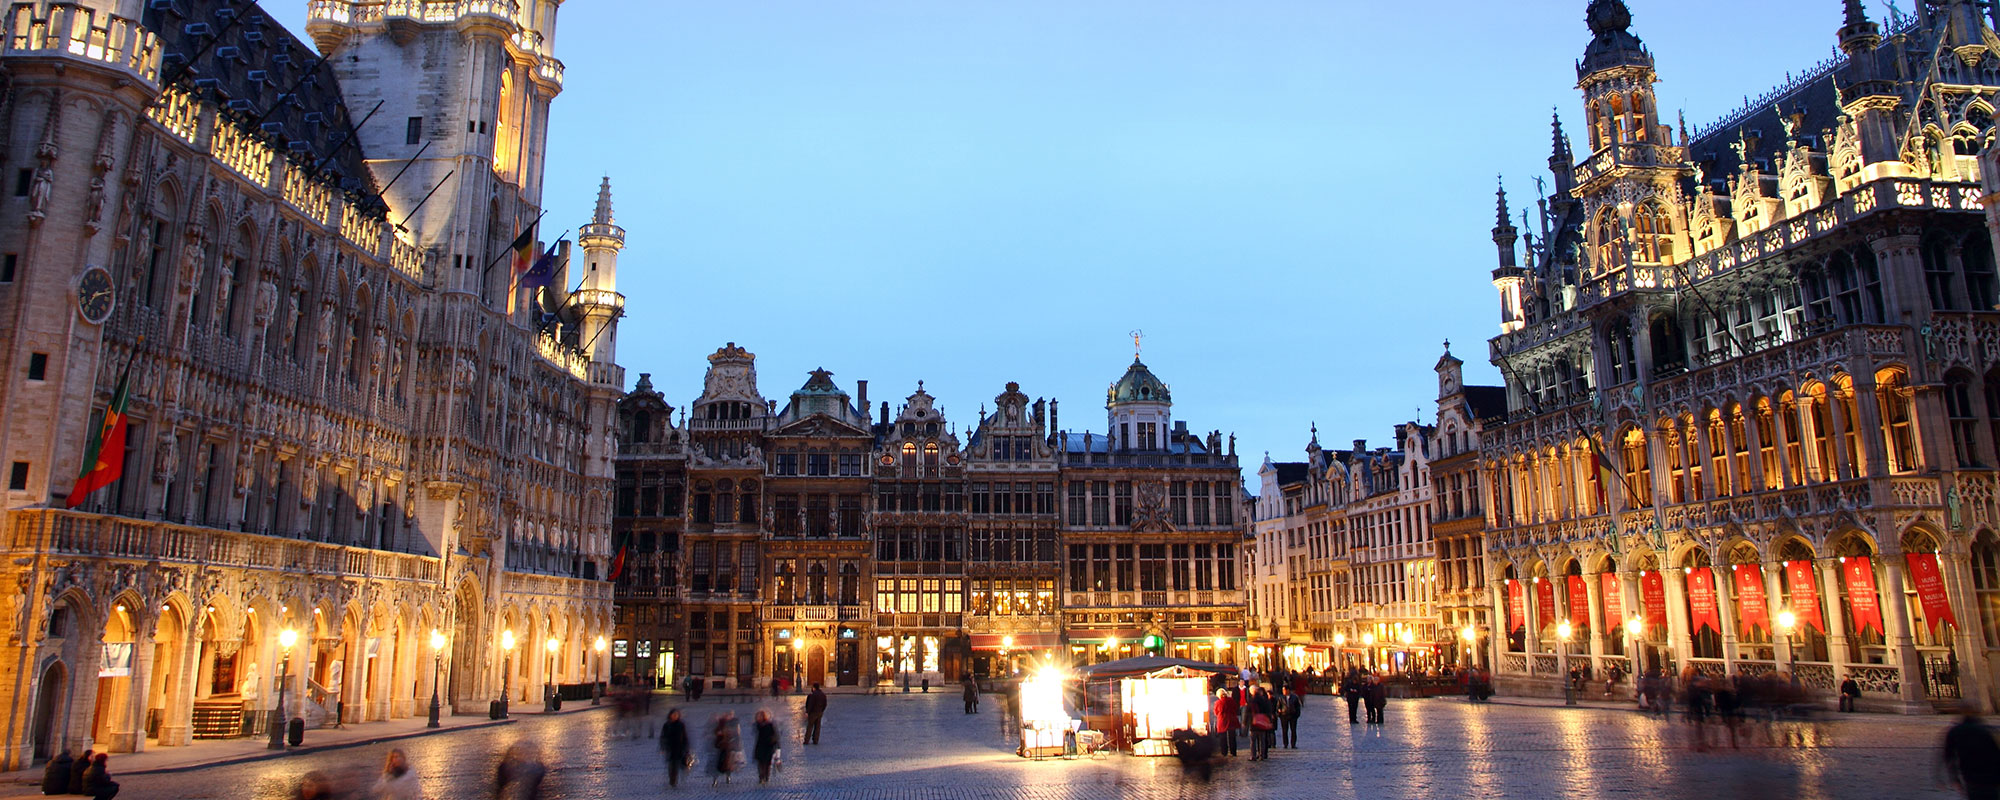 Hotel bruxelles last minute pas cher hotel the moon - Office de tourisme bruxelles grand place ...